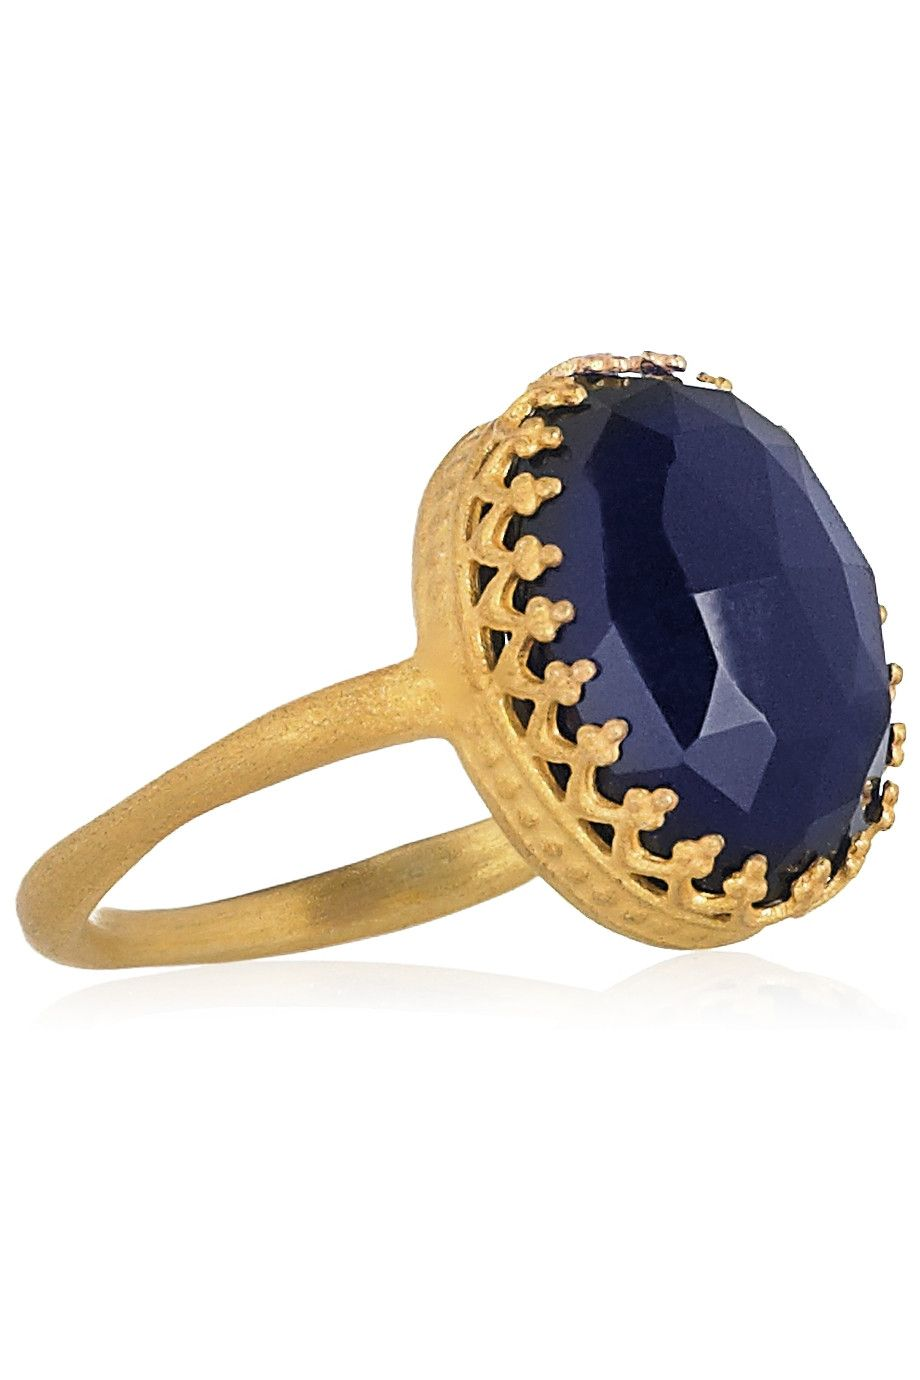 Kevia 22-carat gold-plated ring with navy stone | Wish List ...